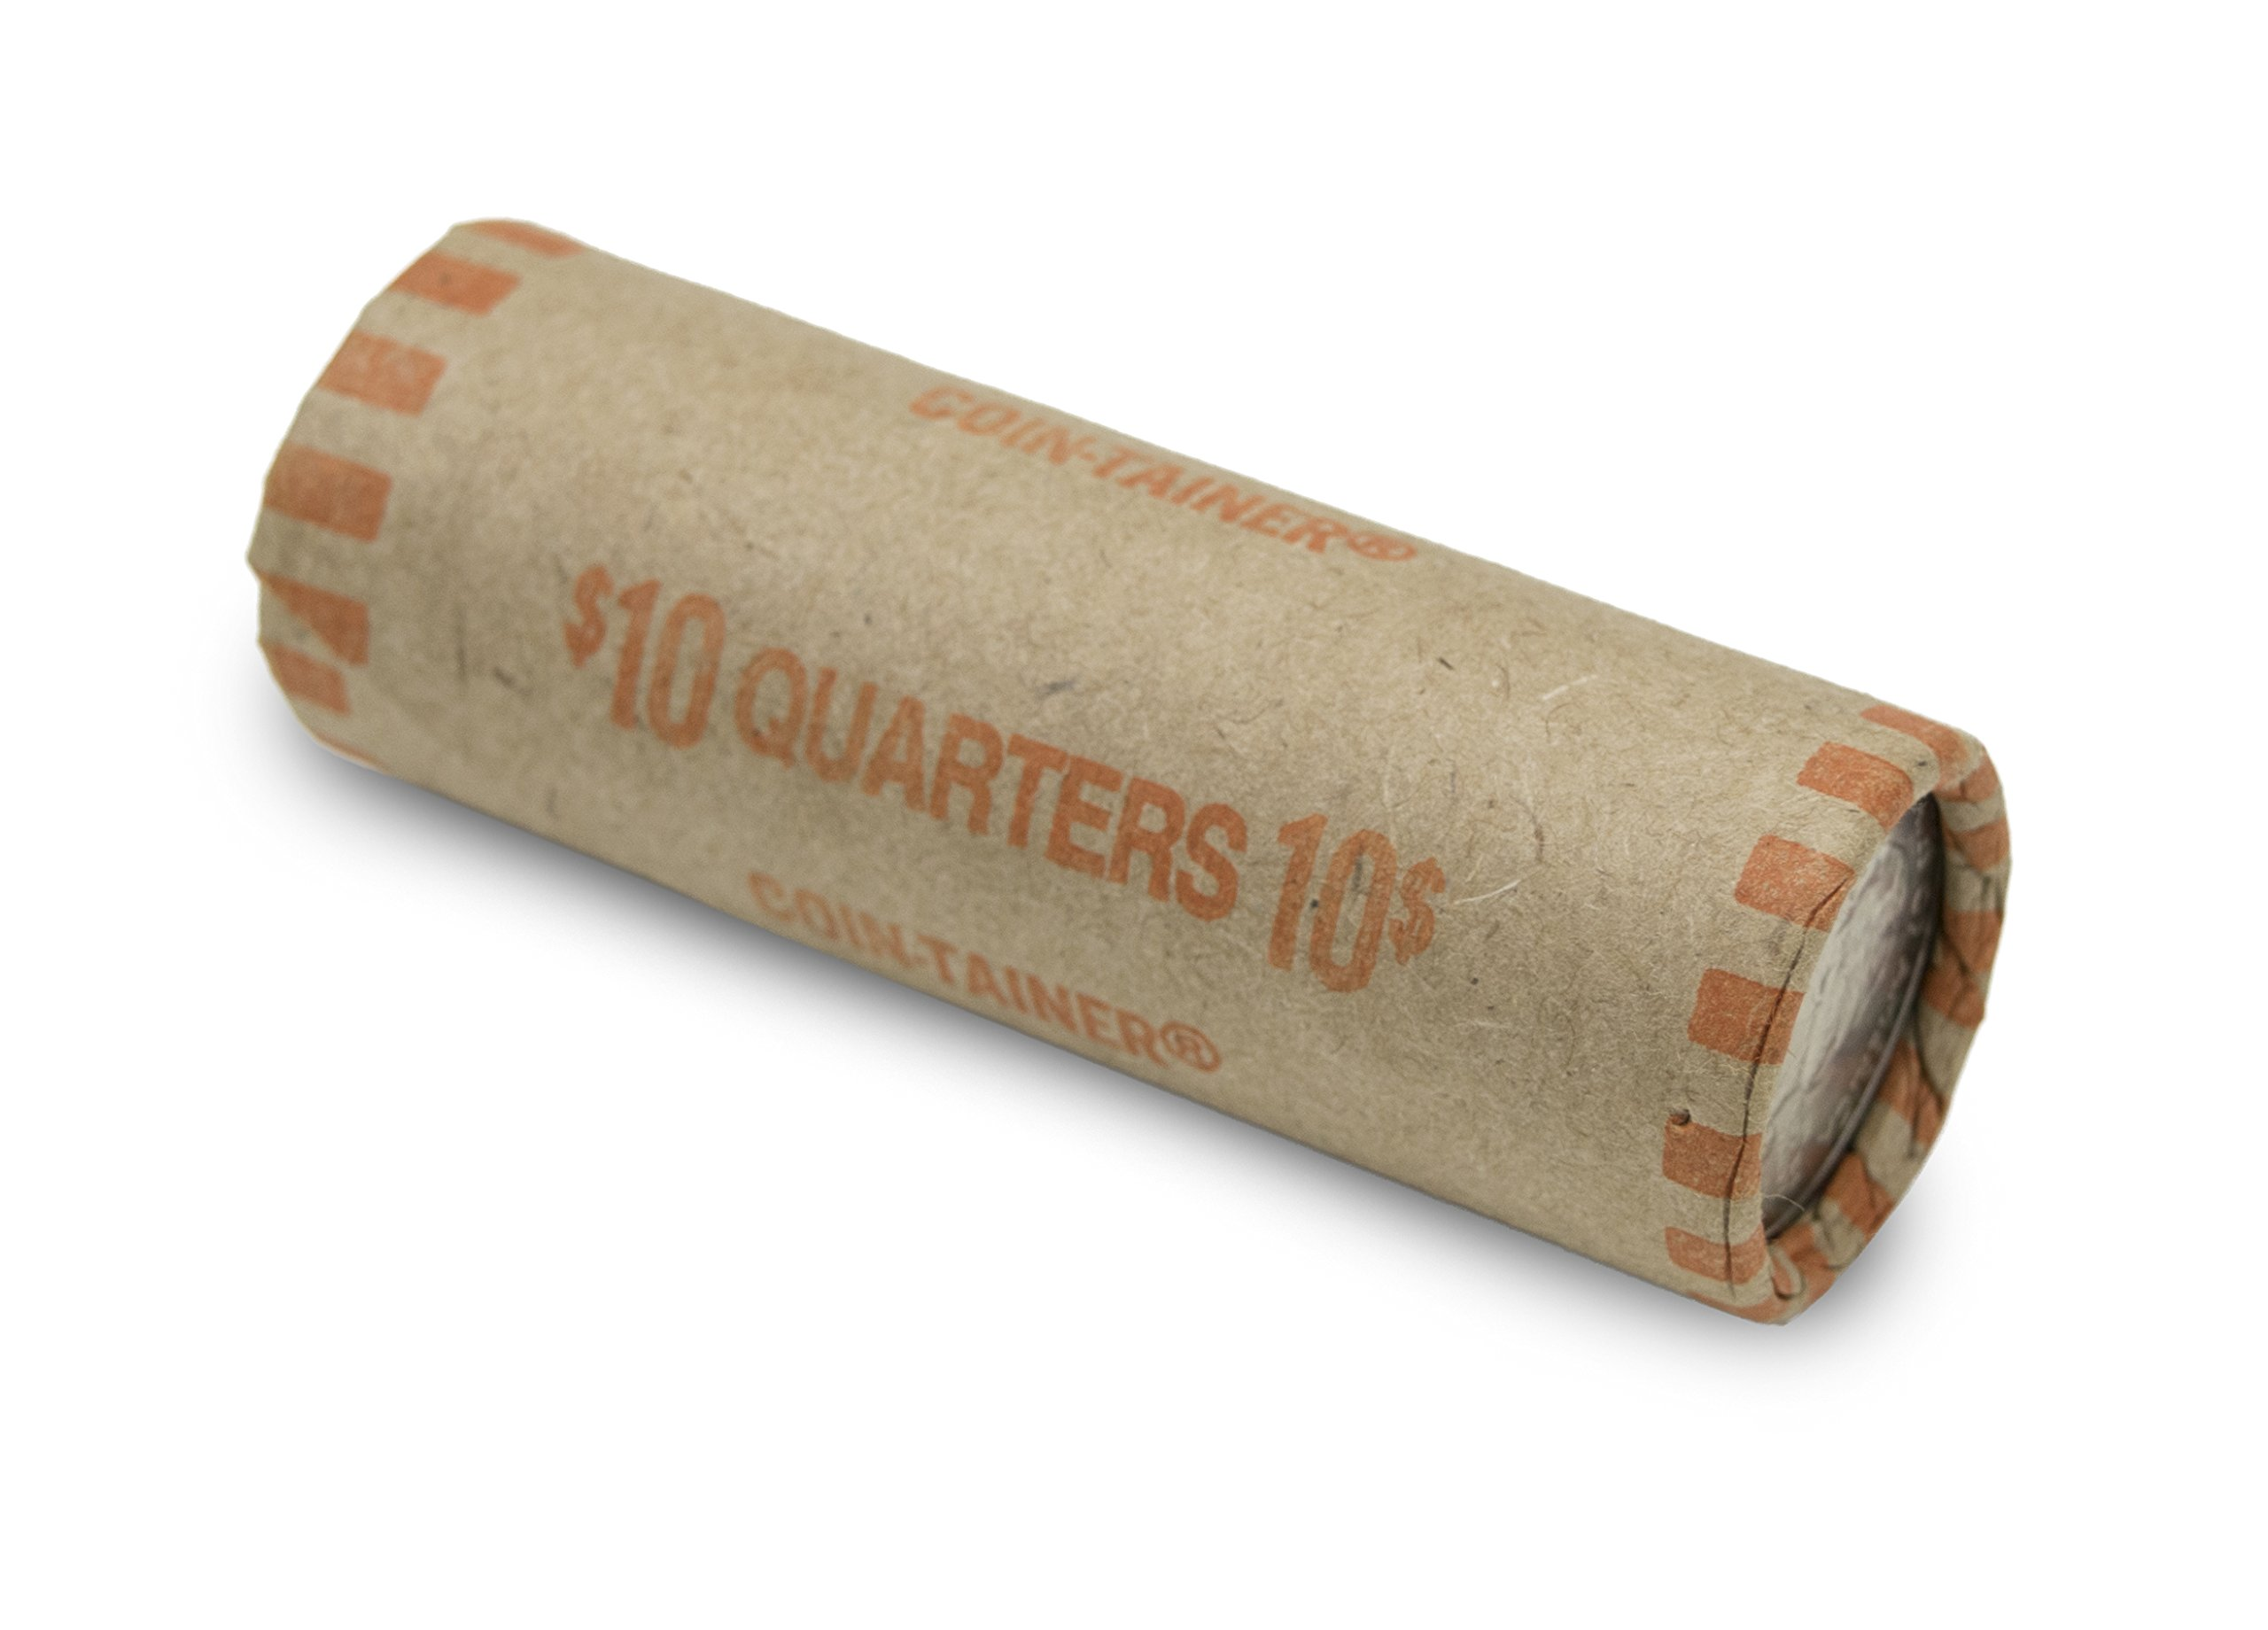 Pre-formed Quarter Coin Wrappers (Box of 1,000)